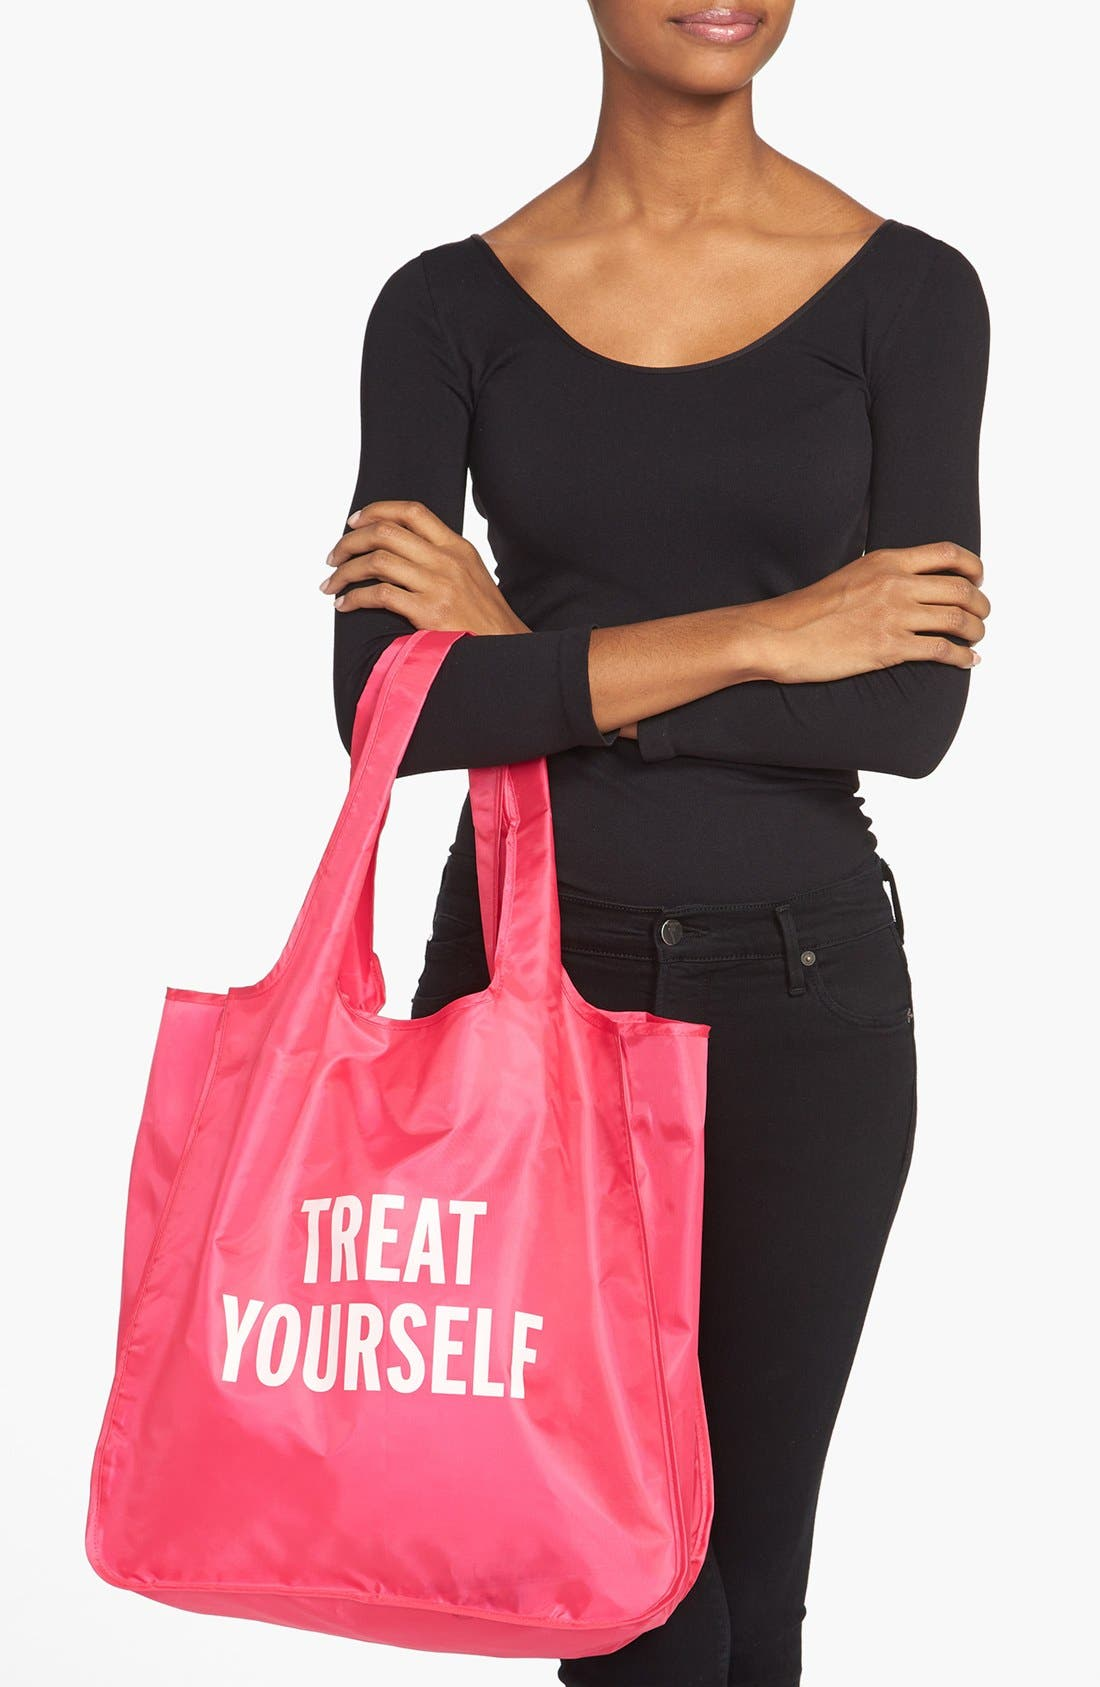 KATE SPADE NEW YORK, 'treat yourself' reusable shopping tote, Alternate thumbnail 2, color, 650